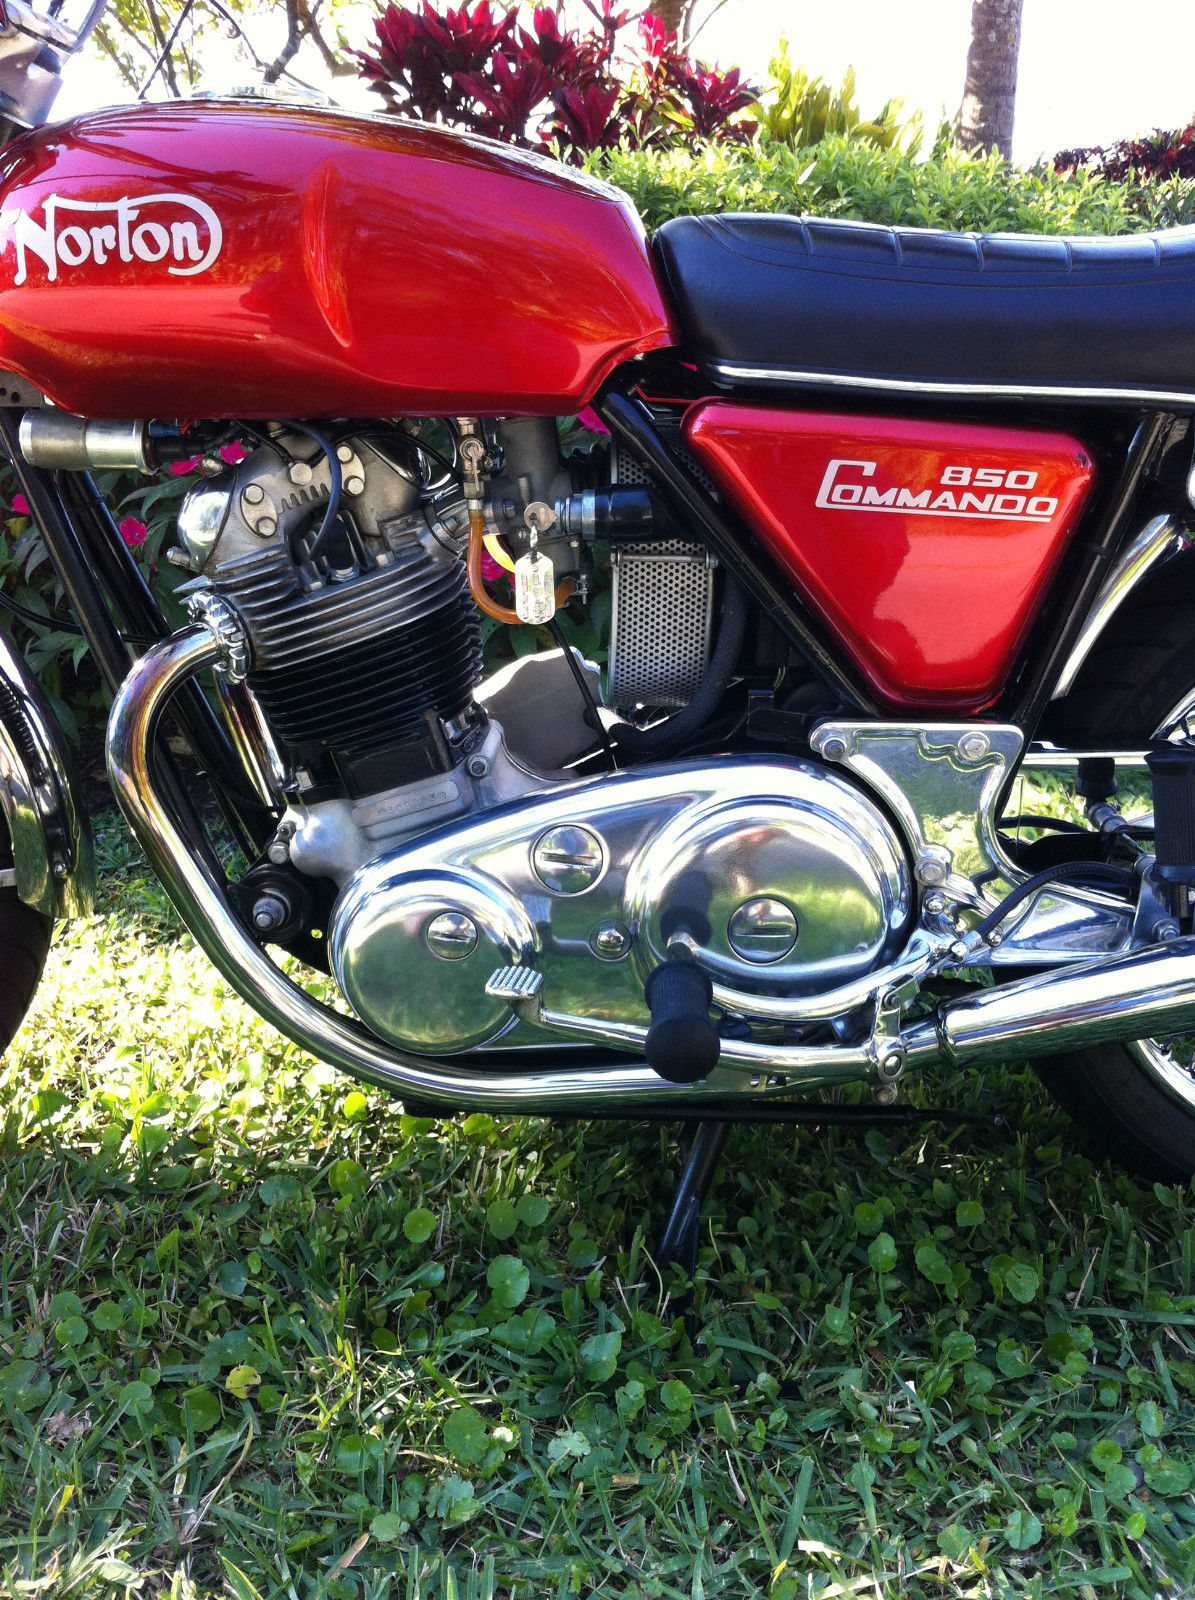 Norton Commando 850 - 1974 - Motor and Transmission, Chain Case, Engine and Gearbox.